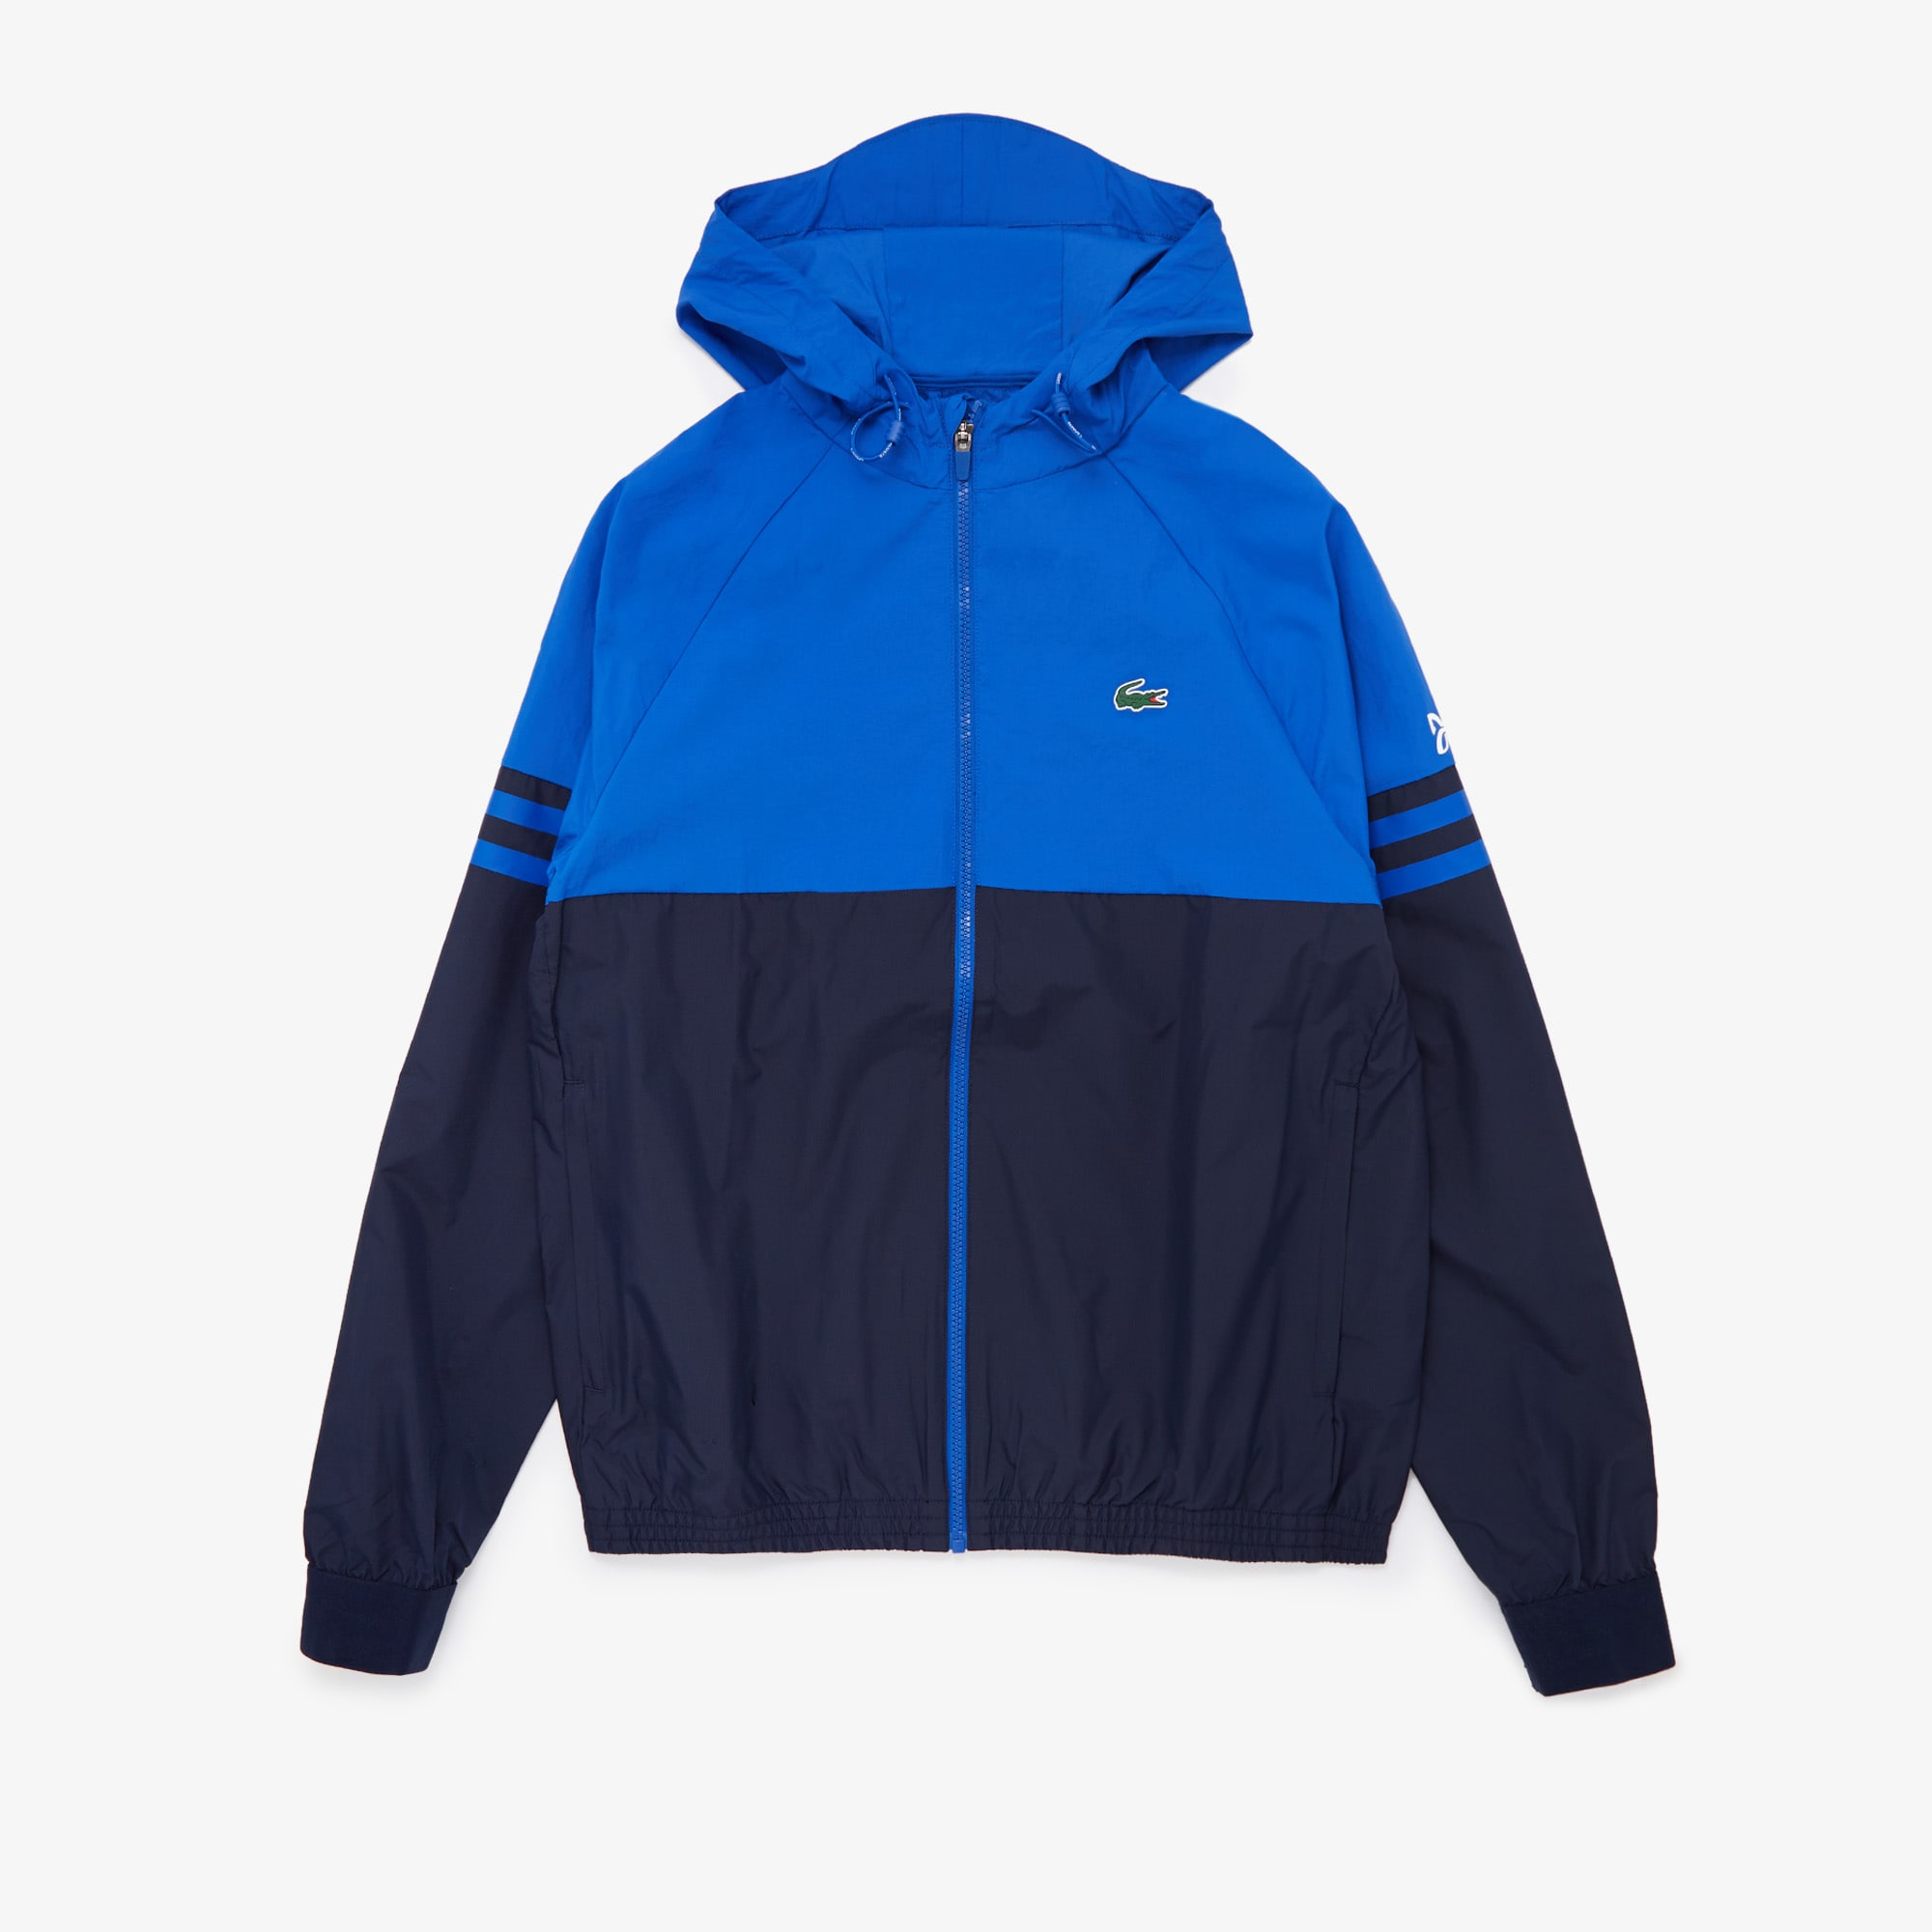 라코스테 Lacoste Men's SPORT x Novak Djokovic Water-Resistant Windbreaker